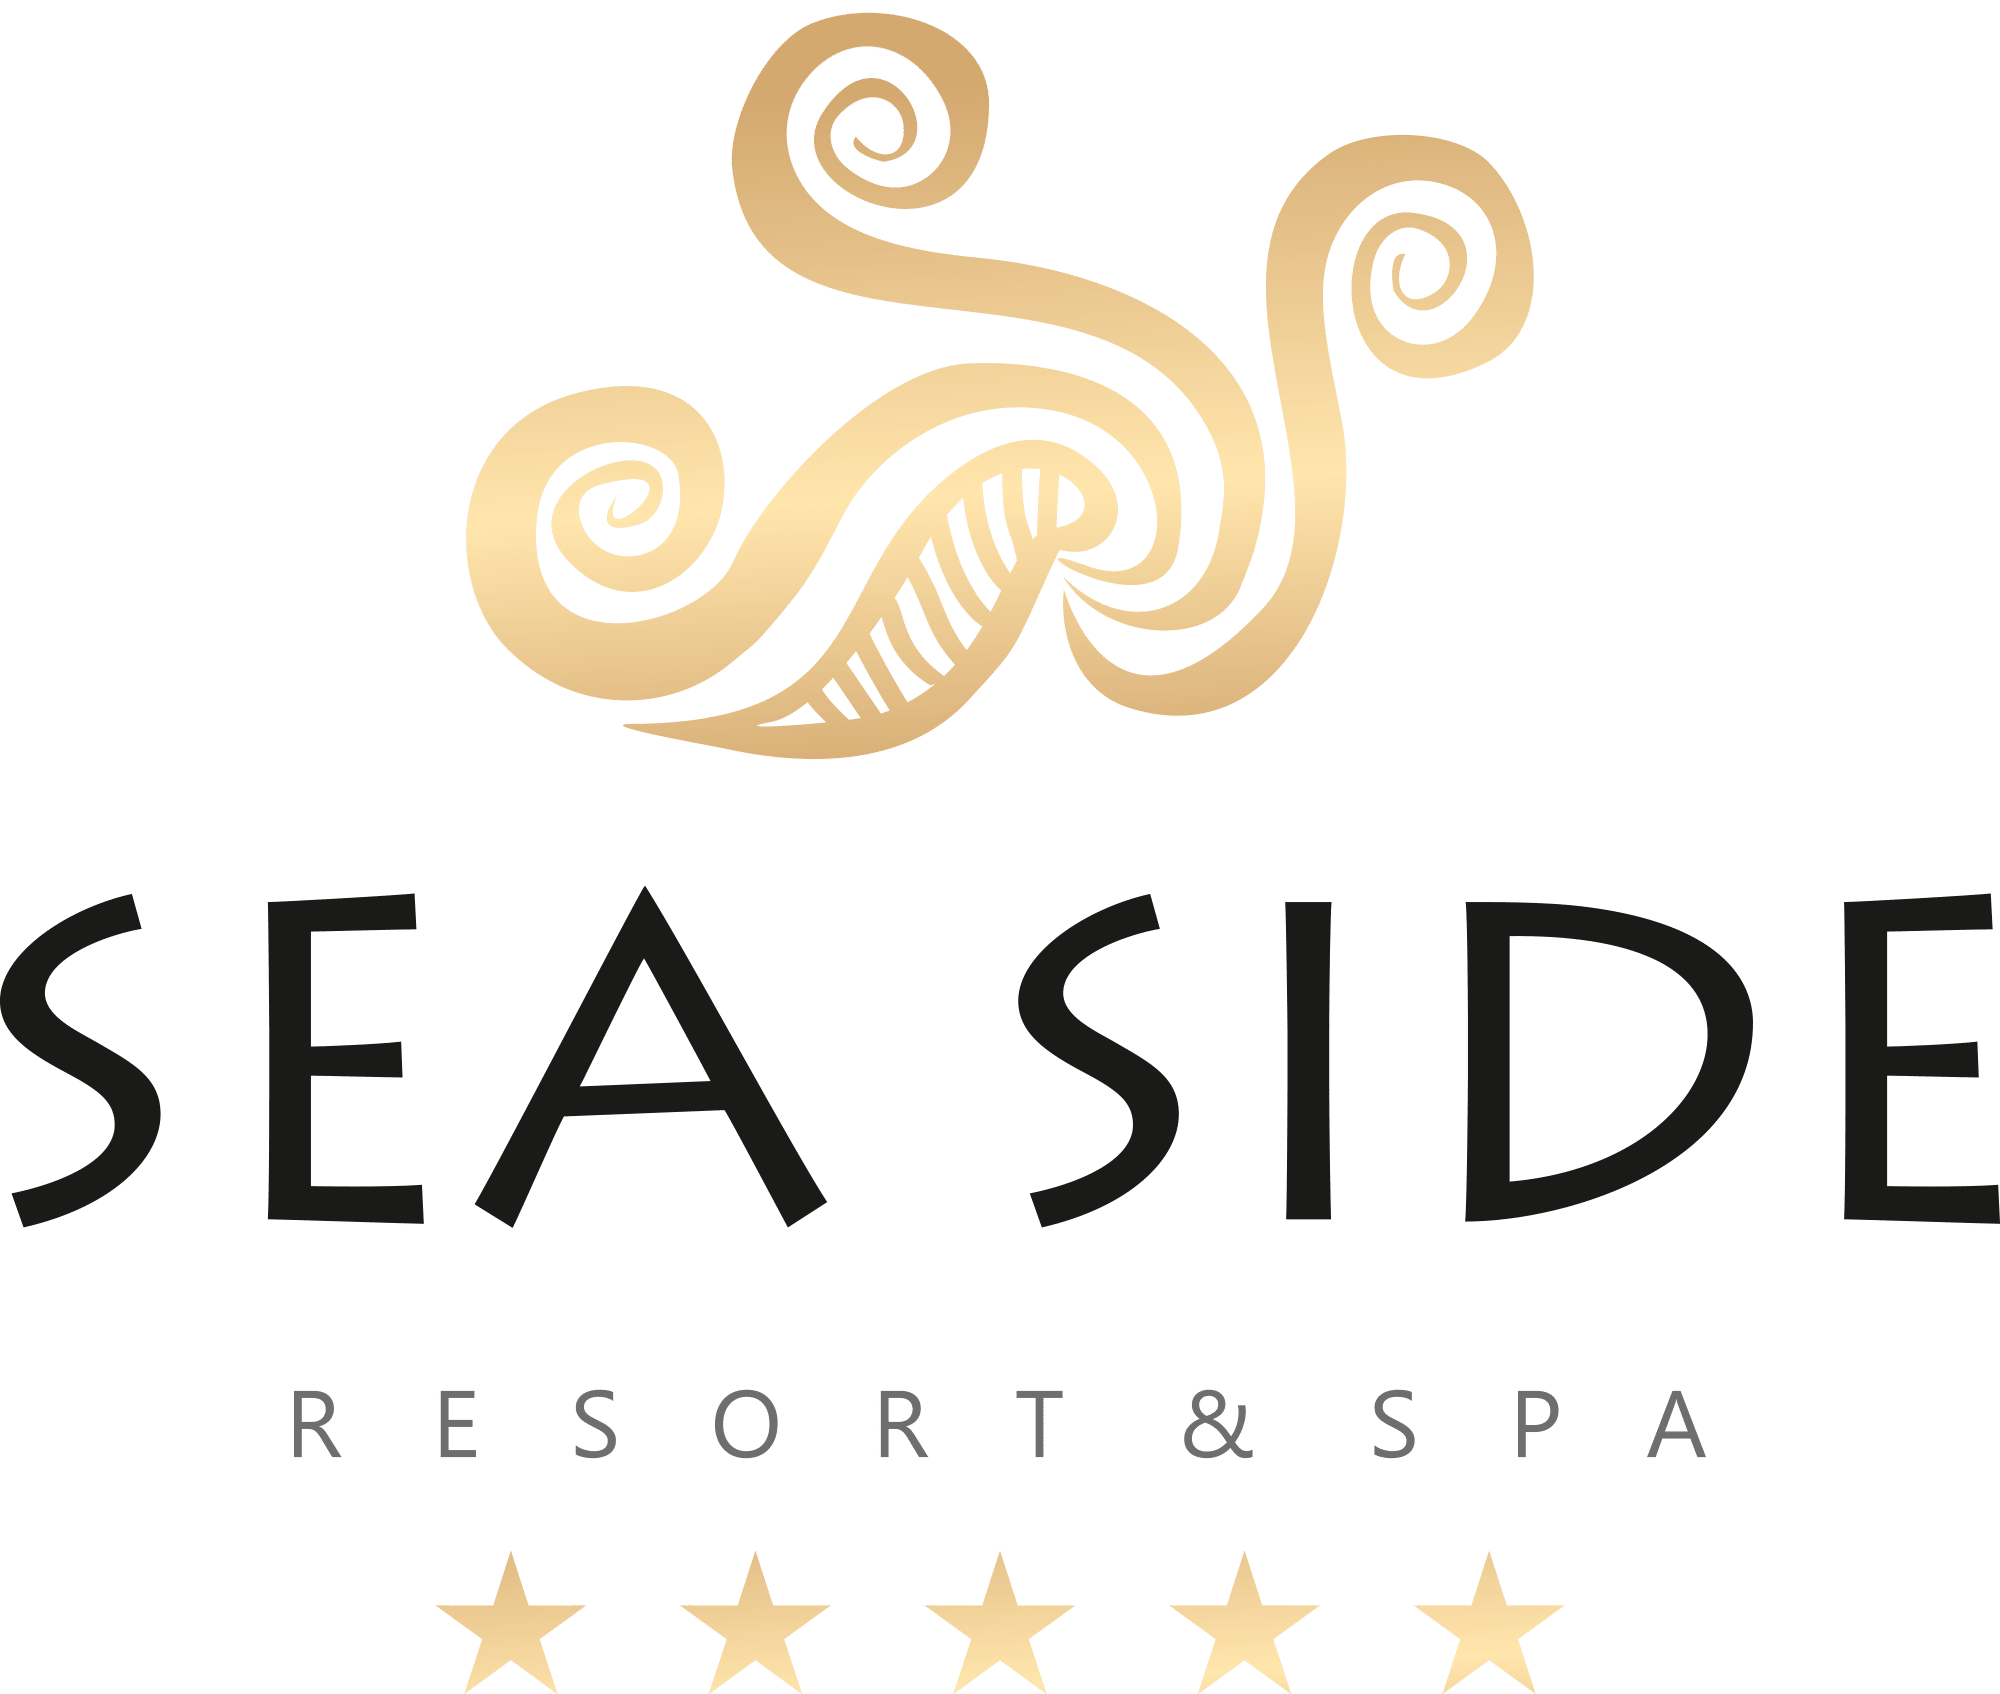 Sea Side Resort & Spa Logotype (Color)